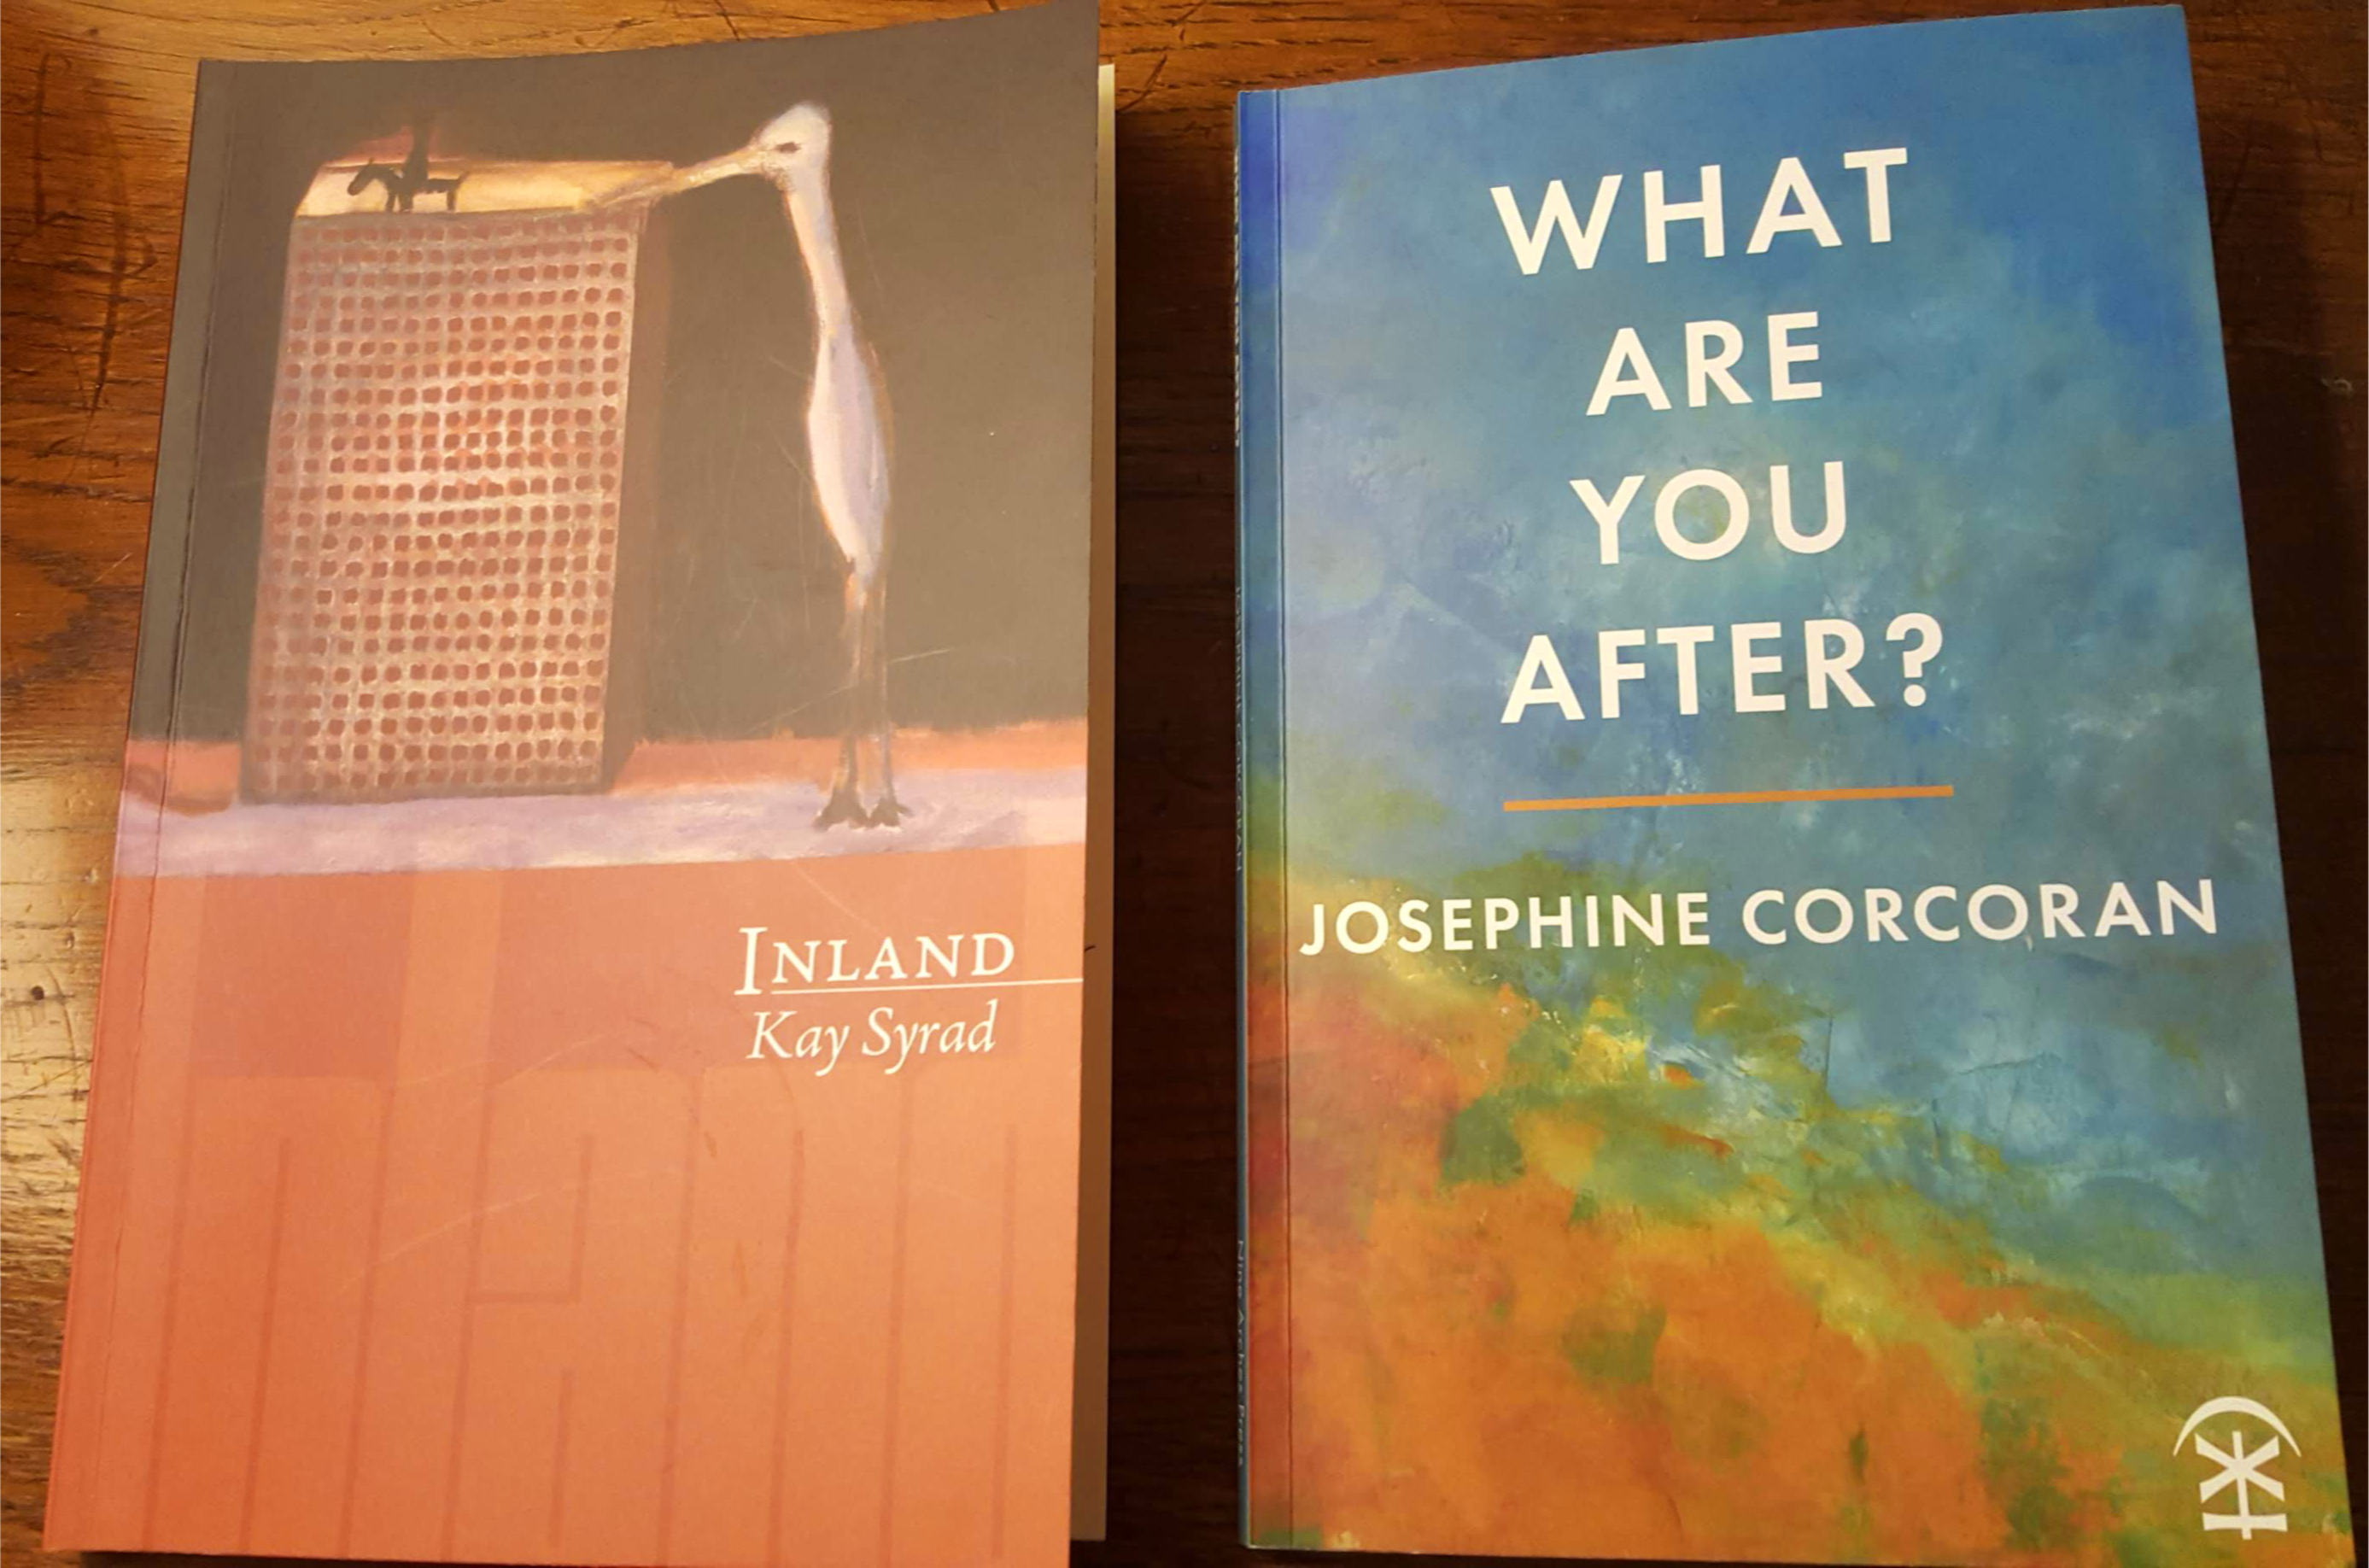 Inland - Kay Syrad and What Are You After? - Josephine Corcoran